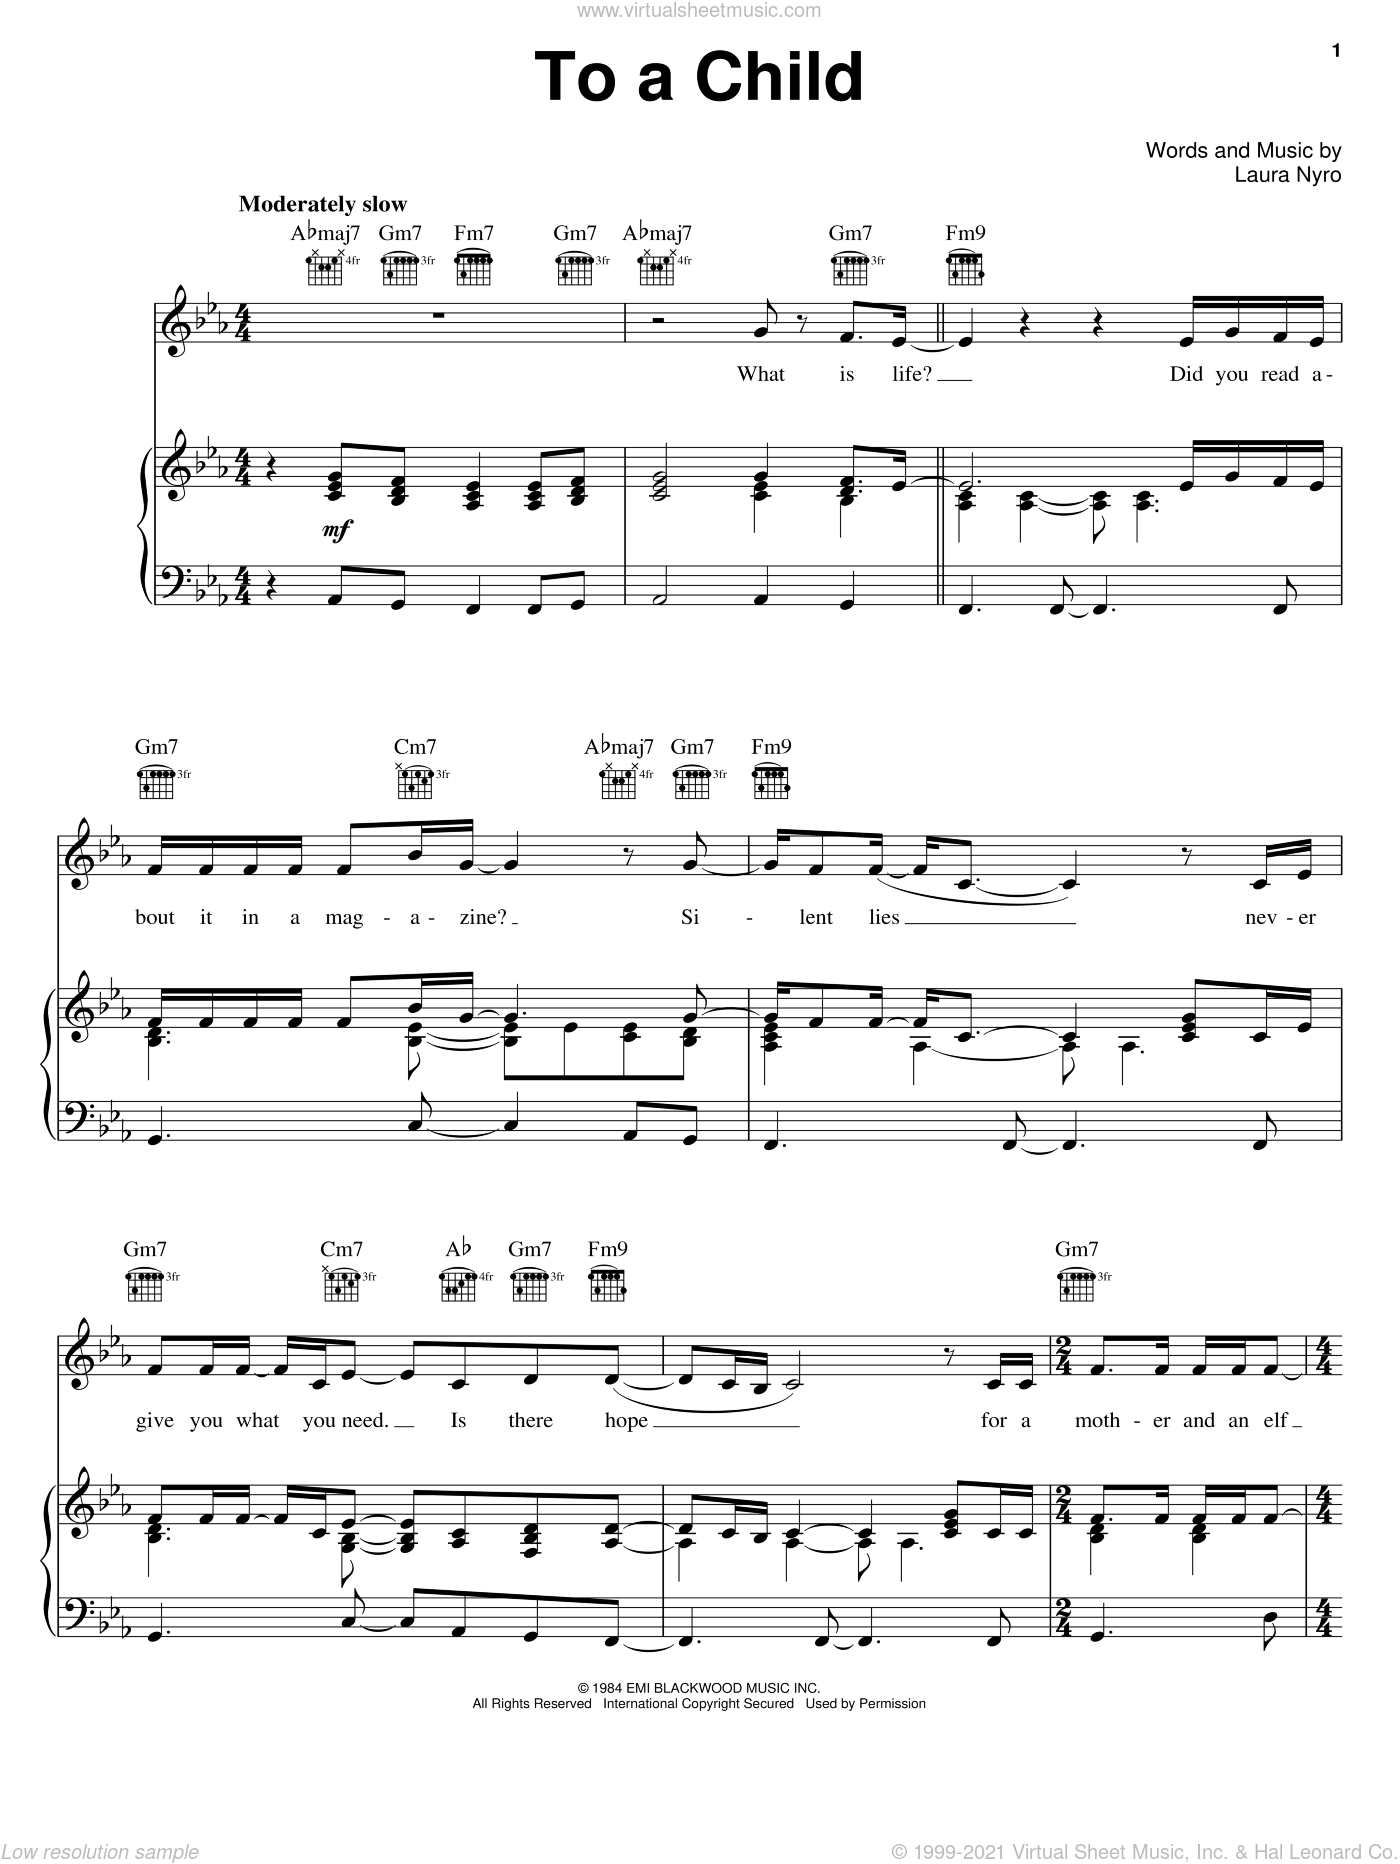 To A Child sheet music for voice, piano or guitar by Laura Nyro